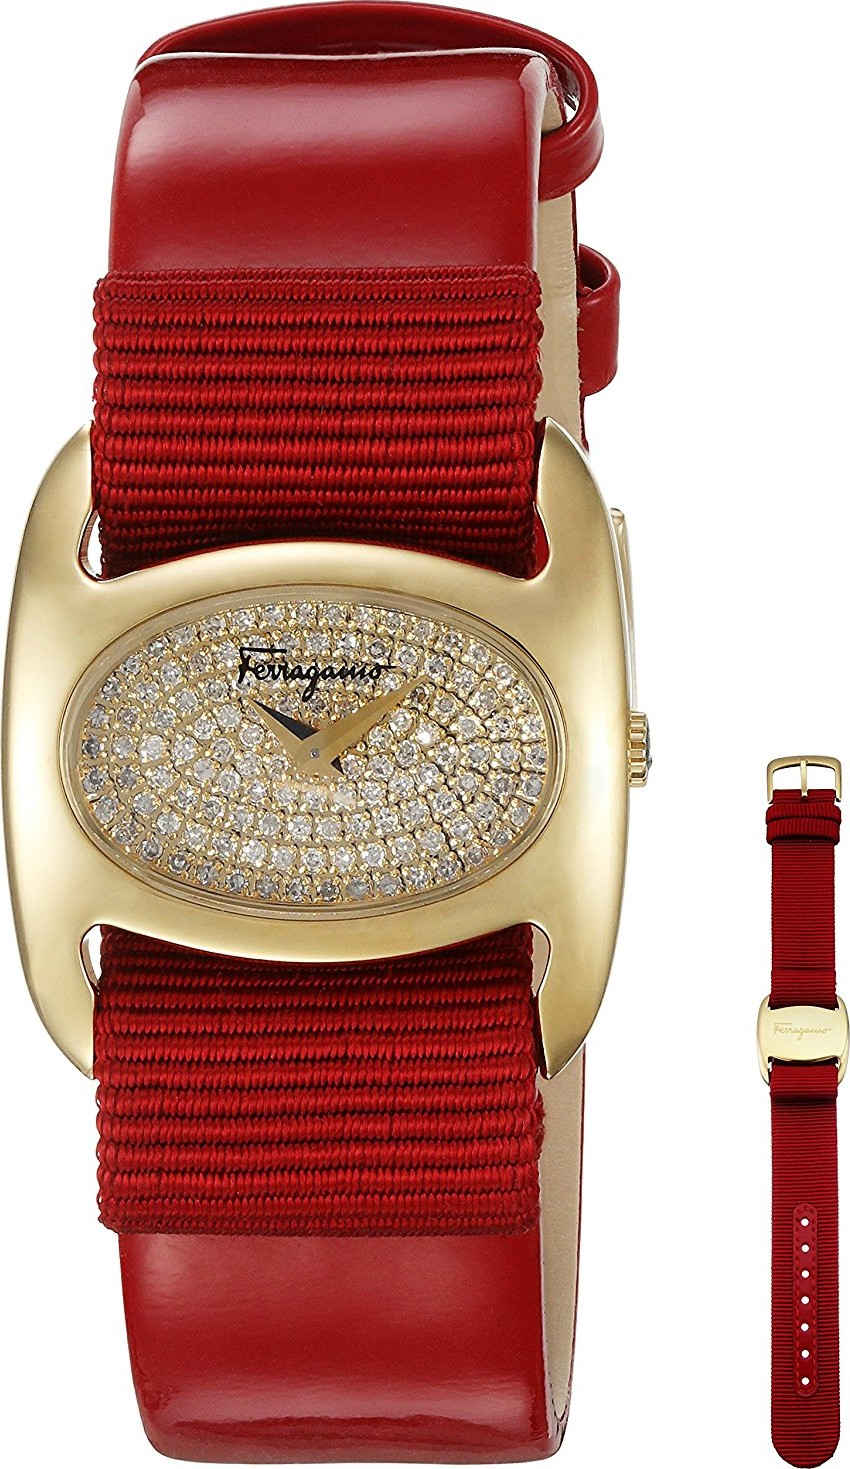 Salvatore Ferragamo FIE070015 Varina Diamonds Watch 26mm